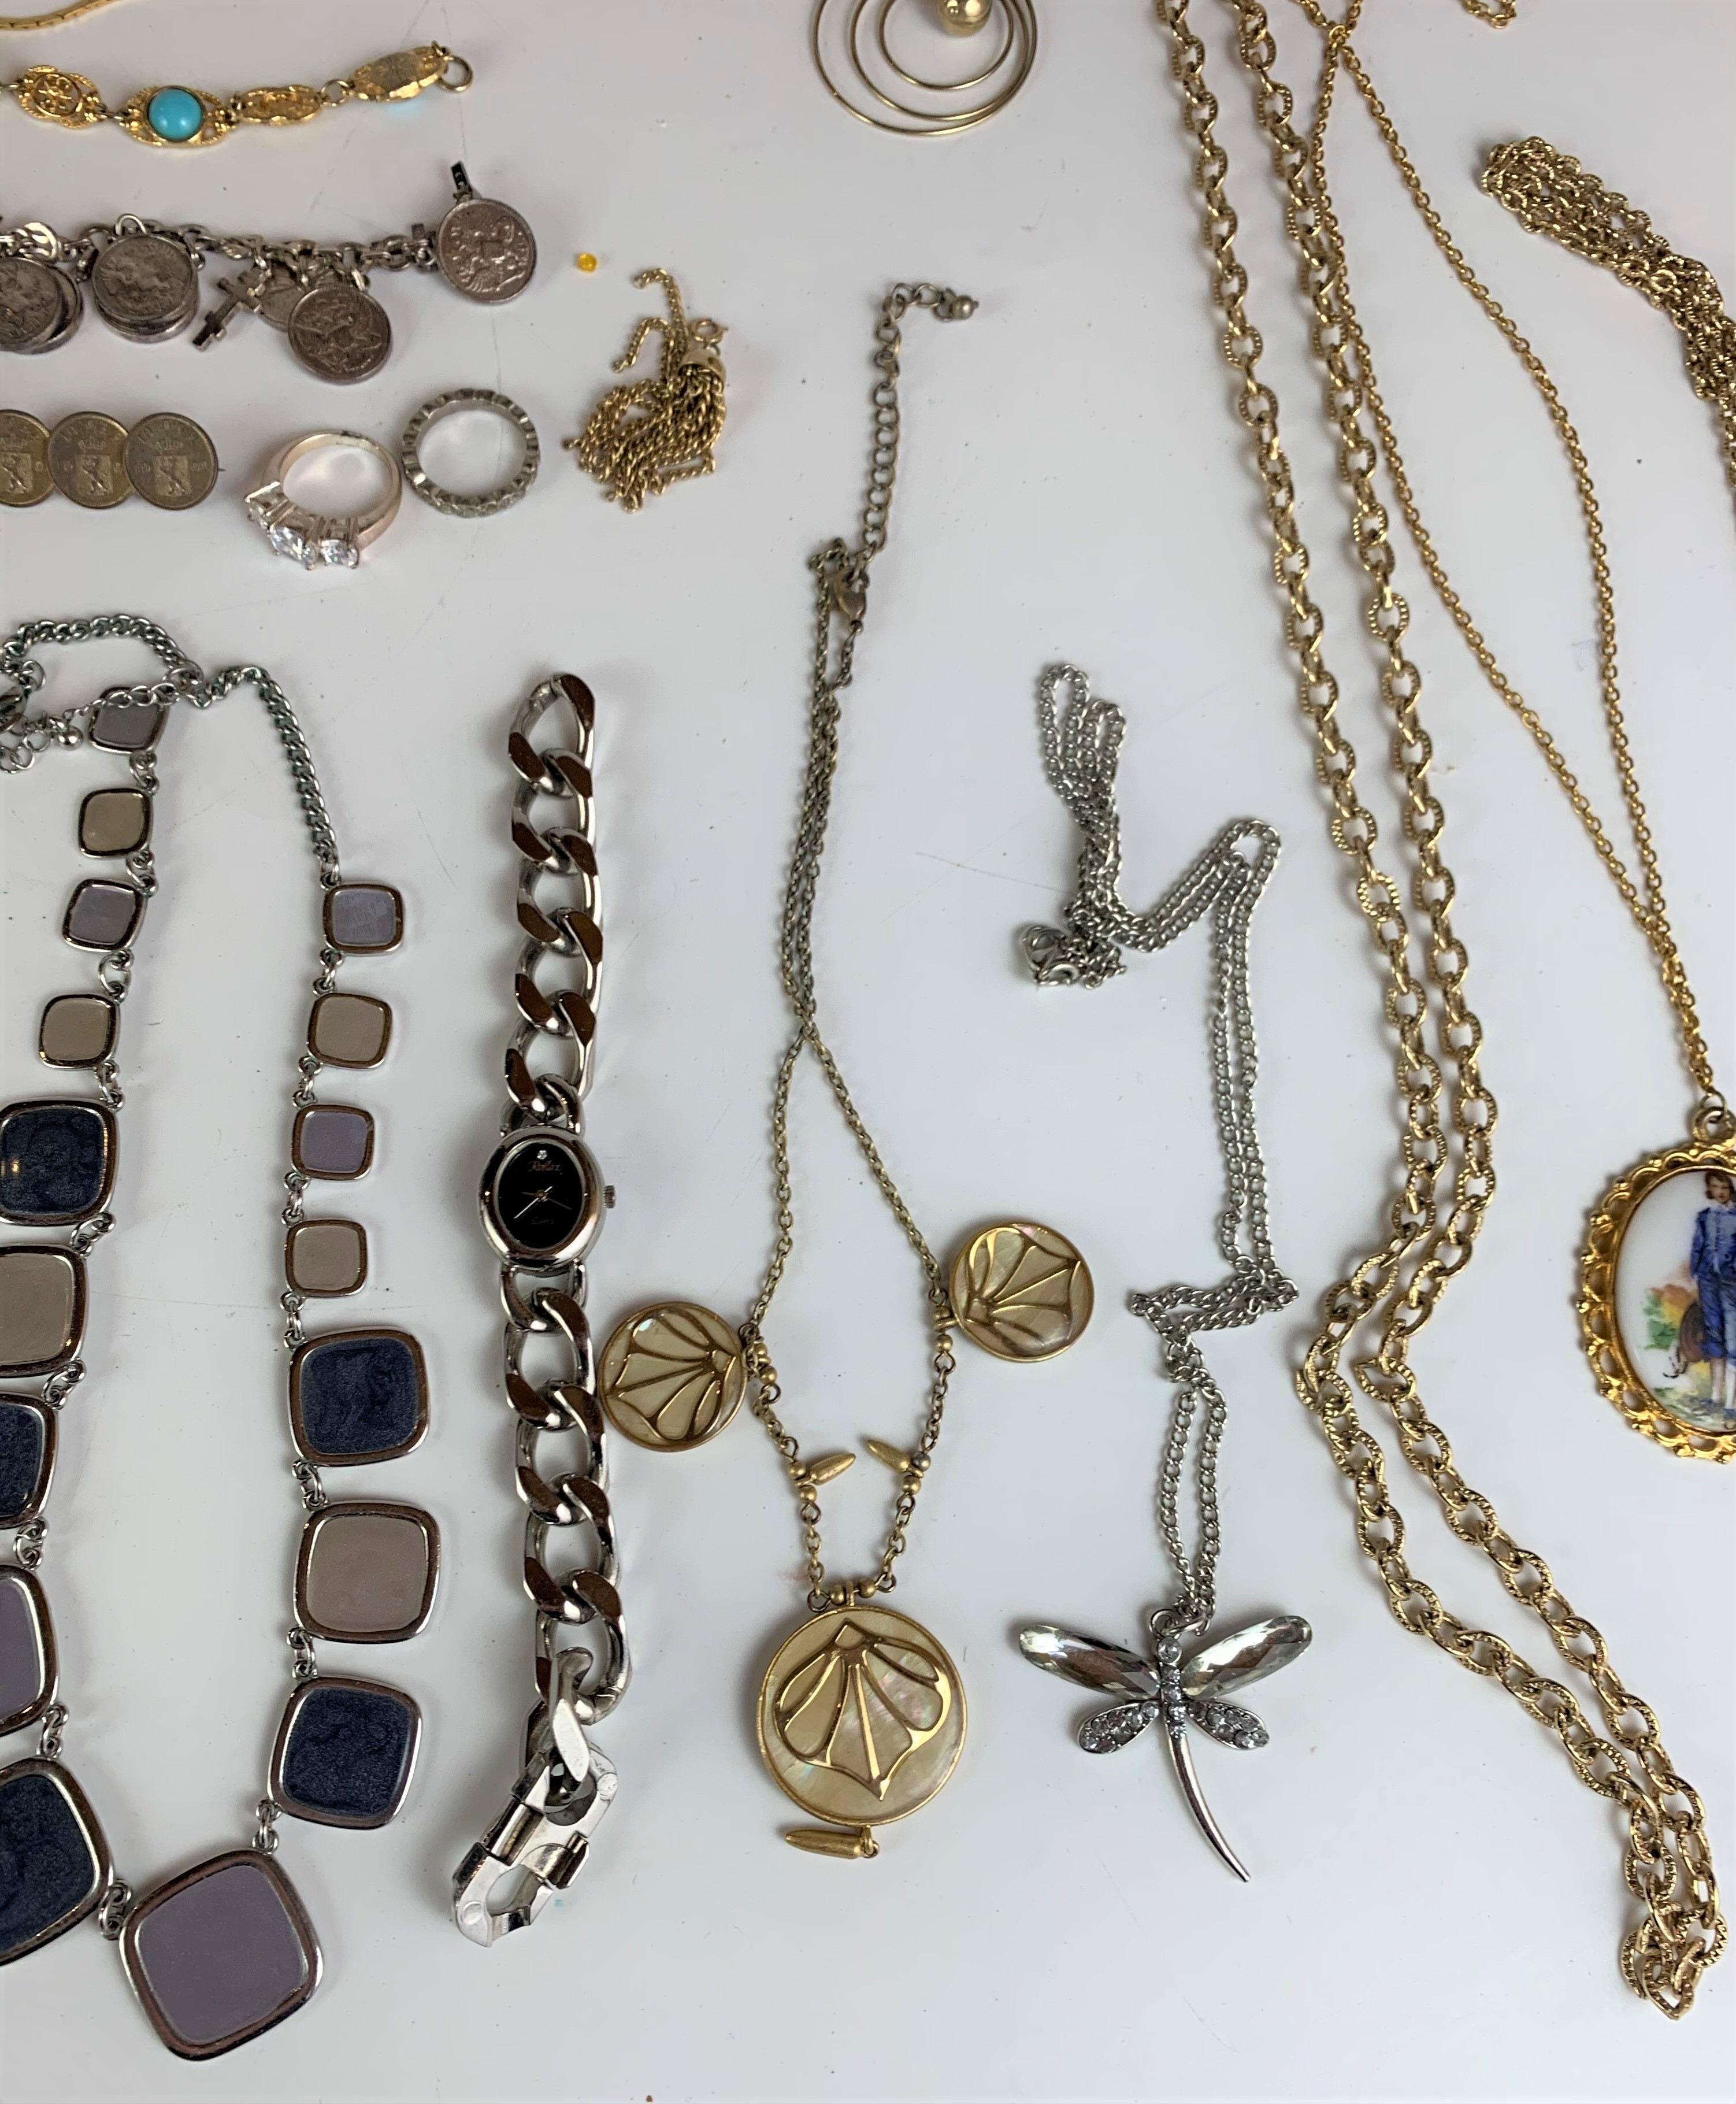 Large bag of assorted dress jewellery including watches, necklaces, bracelets, brooches etc. - Image 7 of 10